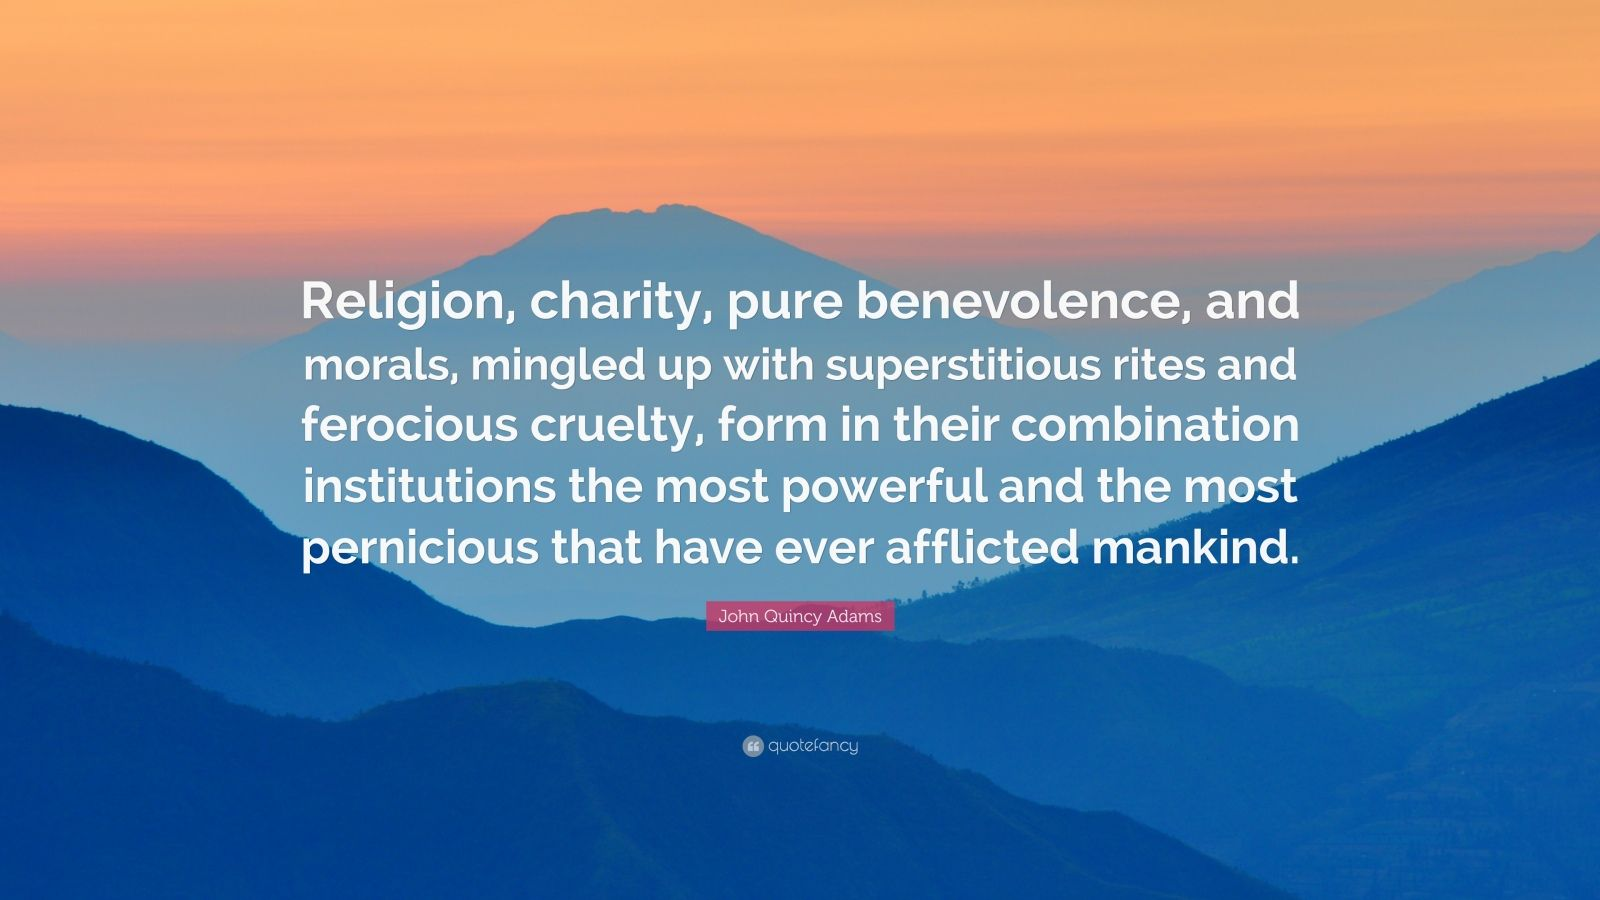 "John Quincy Adams Quote: ""Religion, charity, pure benevolence, and morals, mingled up with superstitious rites and ferocious cruelty, form in their combination institutions the most powerful and the most pernicious that have ever afflicted mankind."""